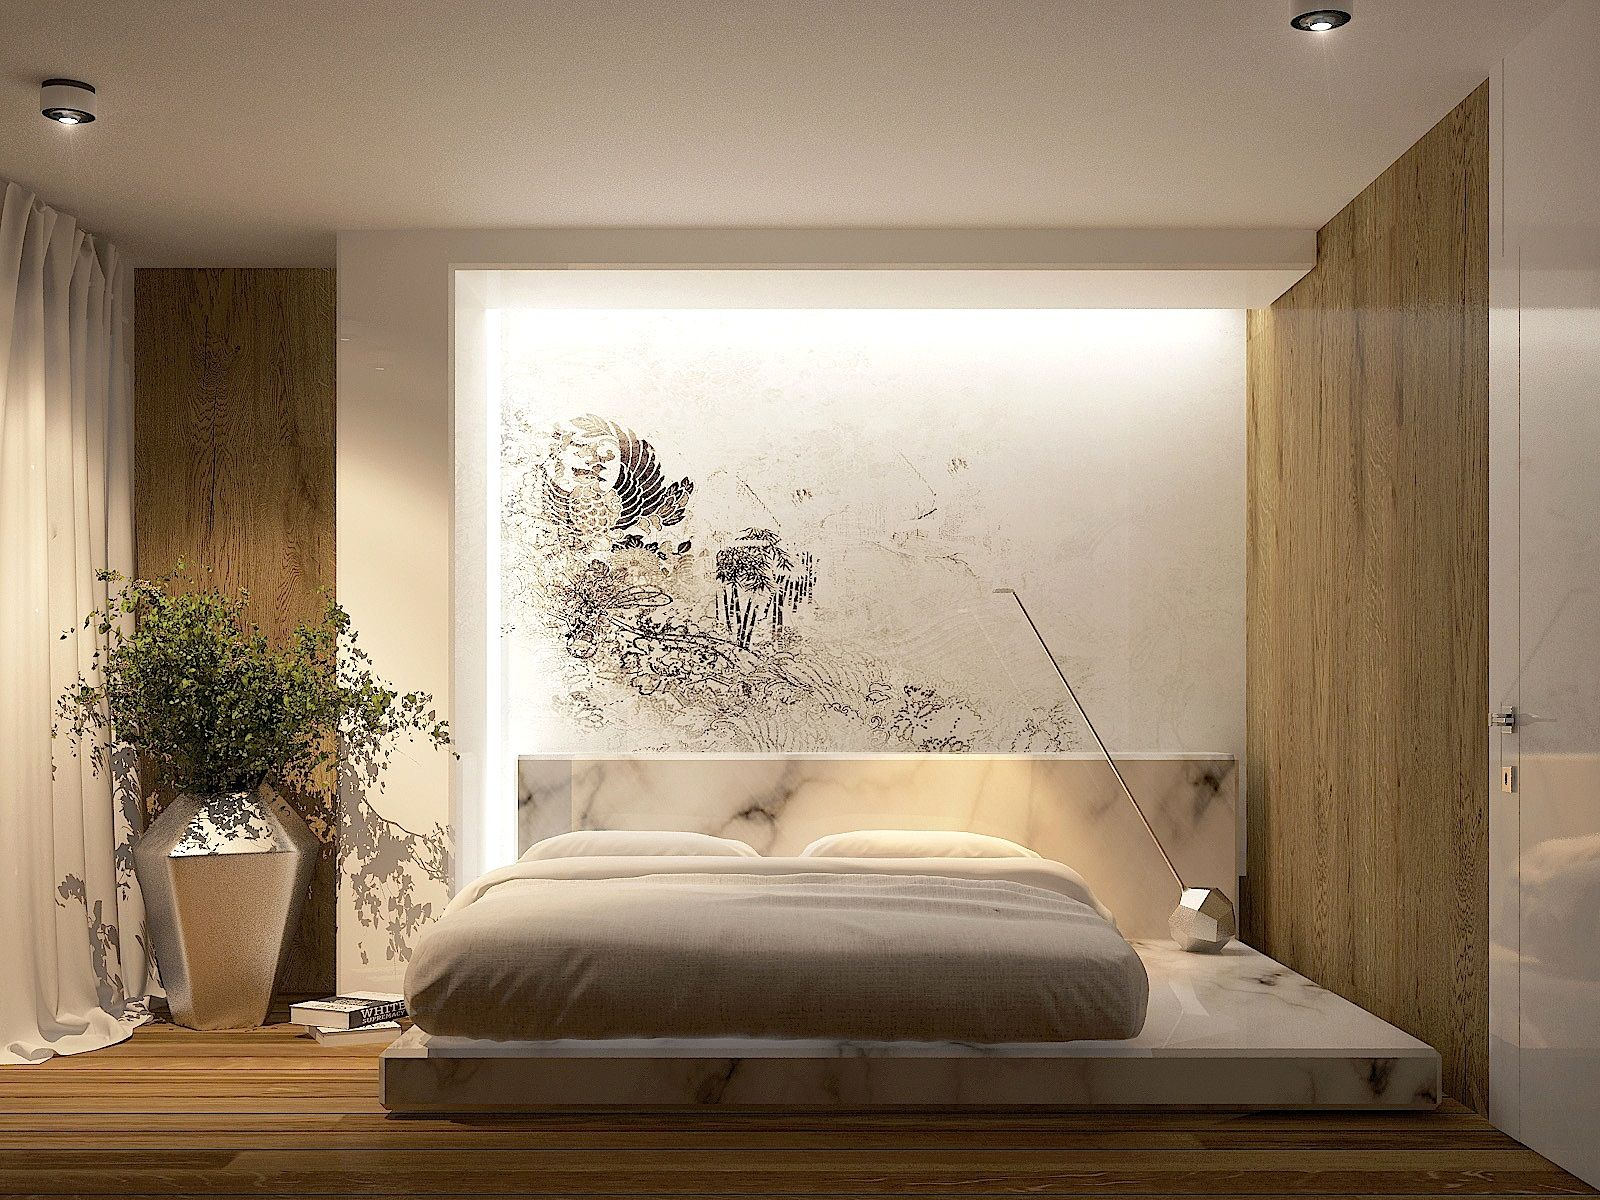 Soothing Unique Bedroom Design Marble Platform Bed Love That Light Ball Nxt To Bed